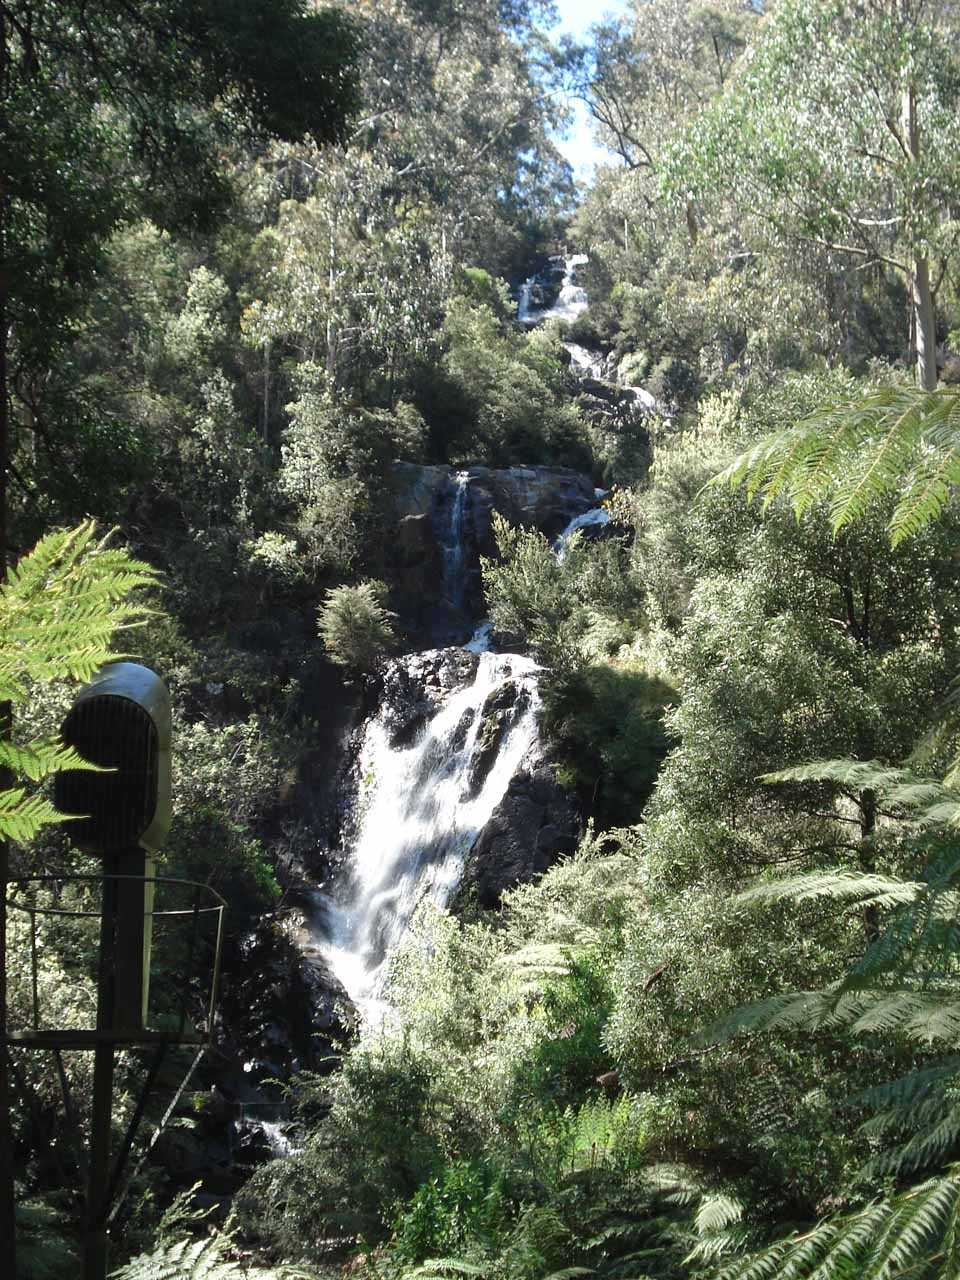 This was about as much of Steavenson Falls that we could see from the tracks here, but notice the floodlight on the lower left